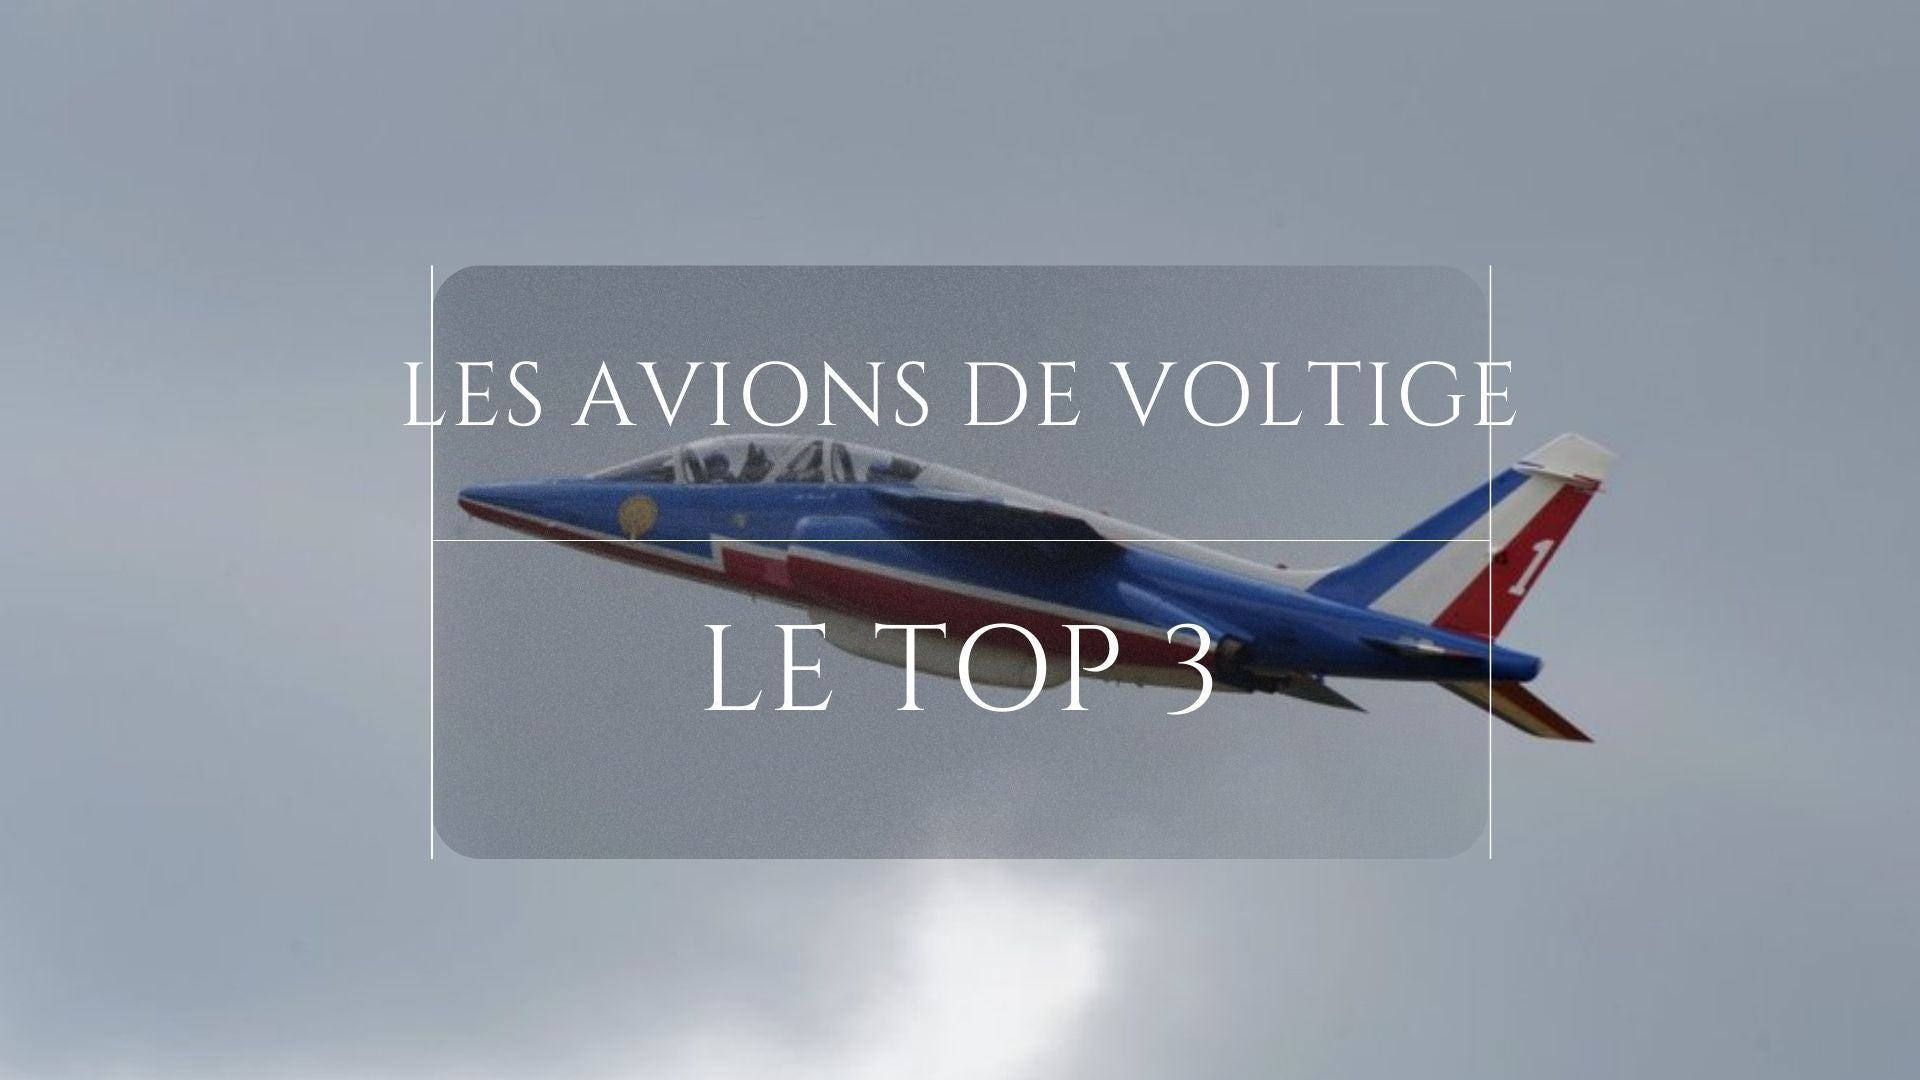 Avion de la Patrouille de France